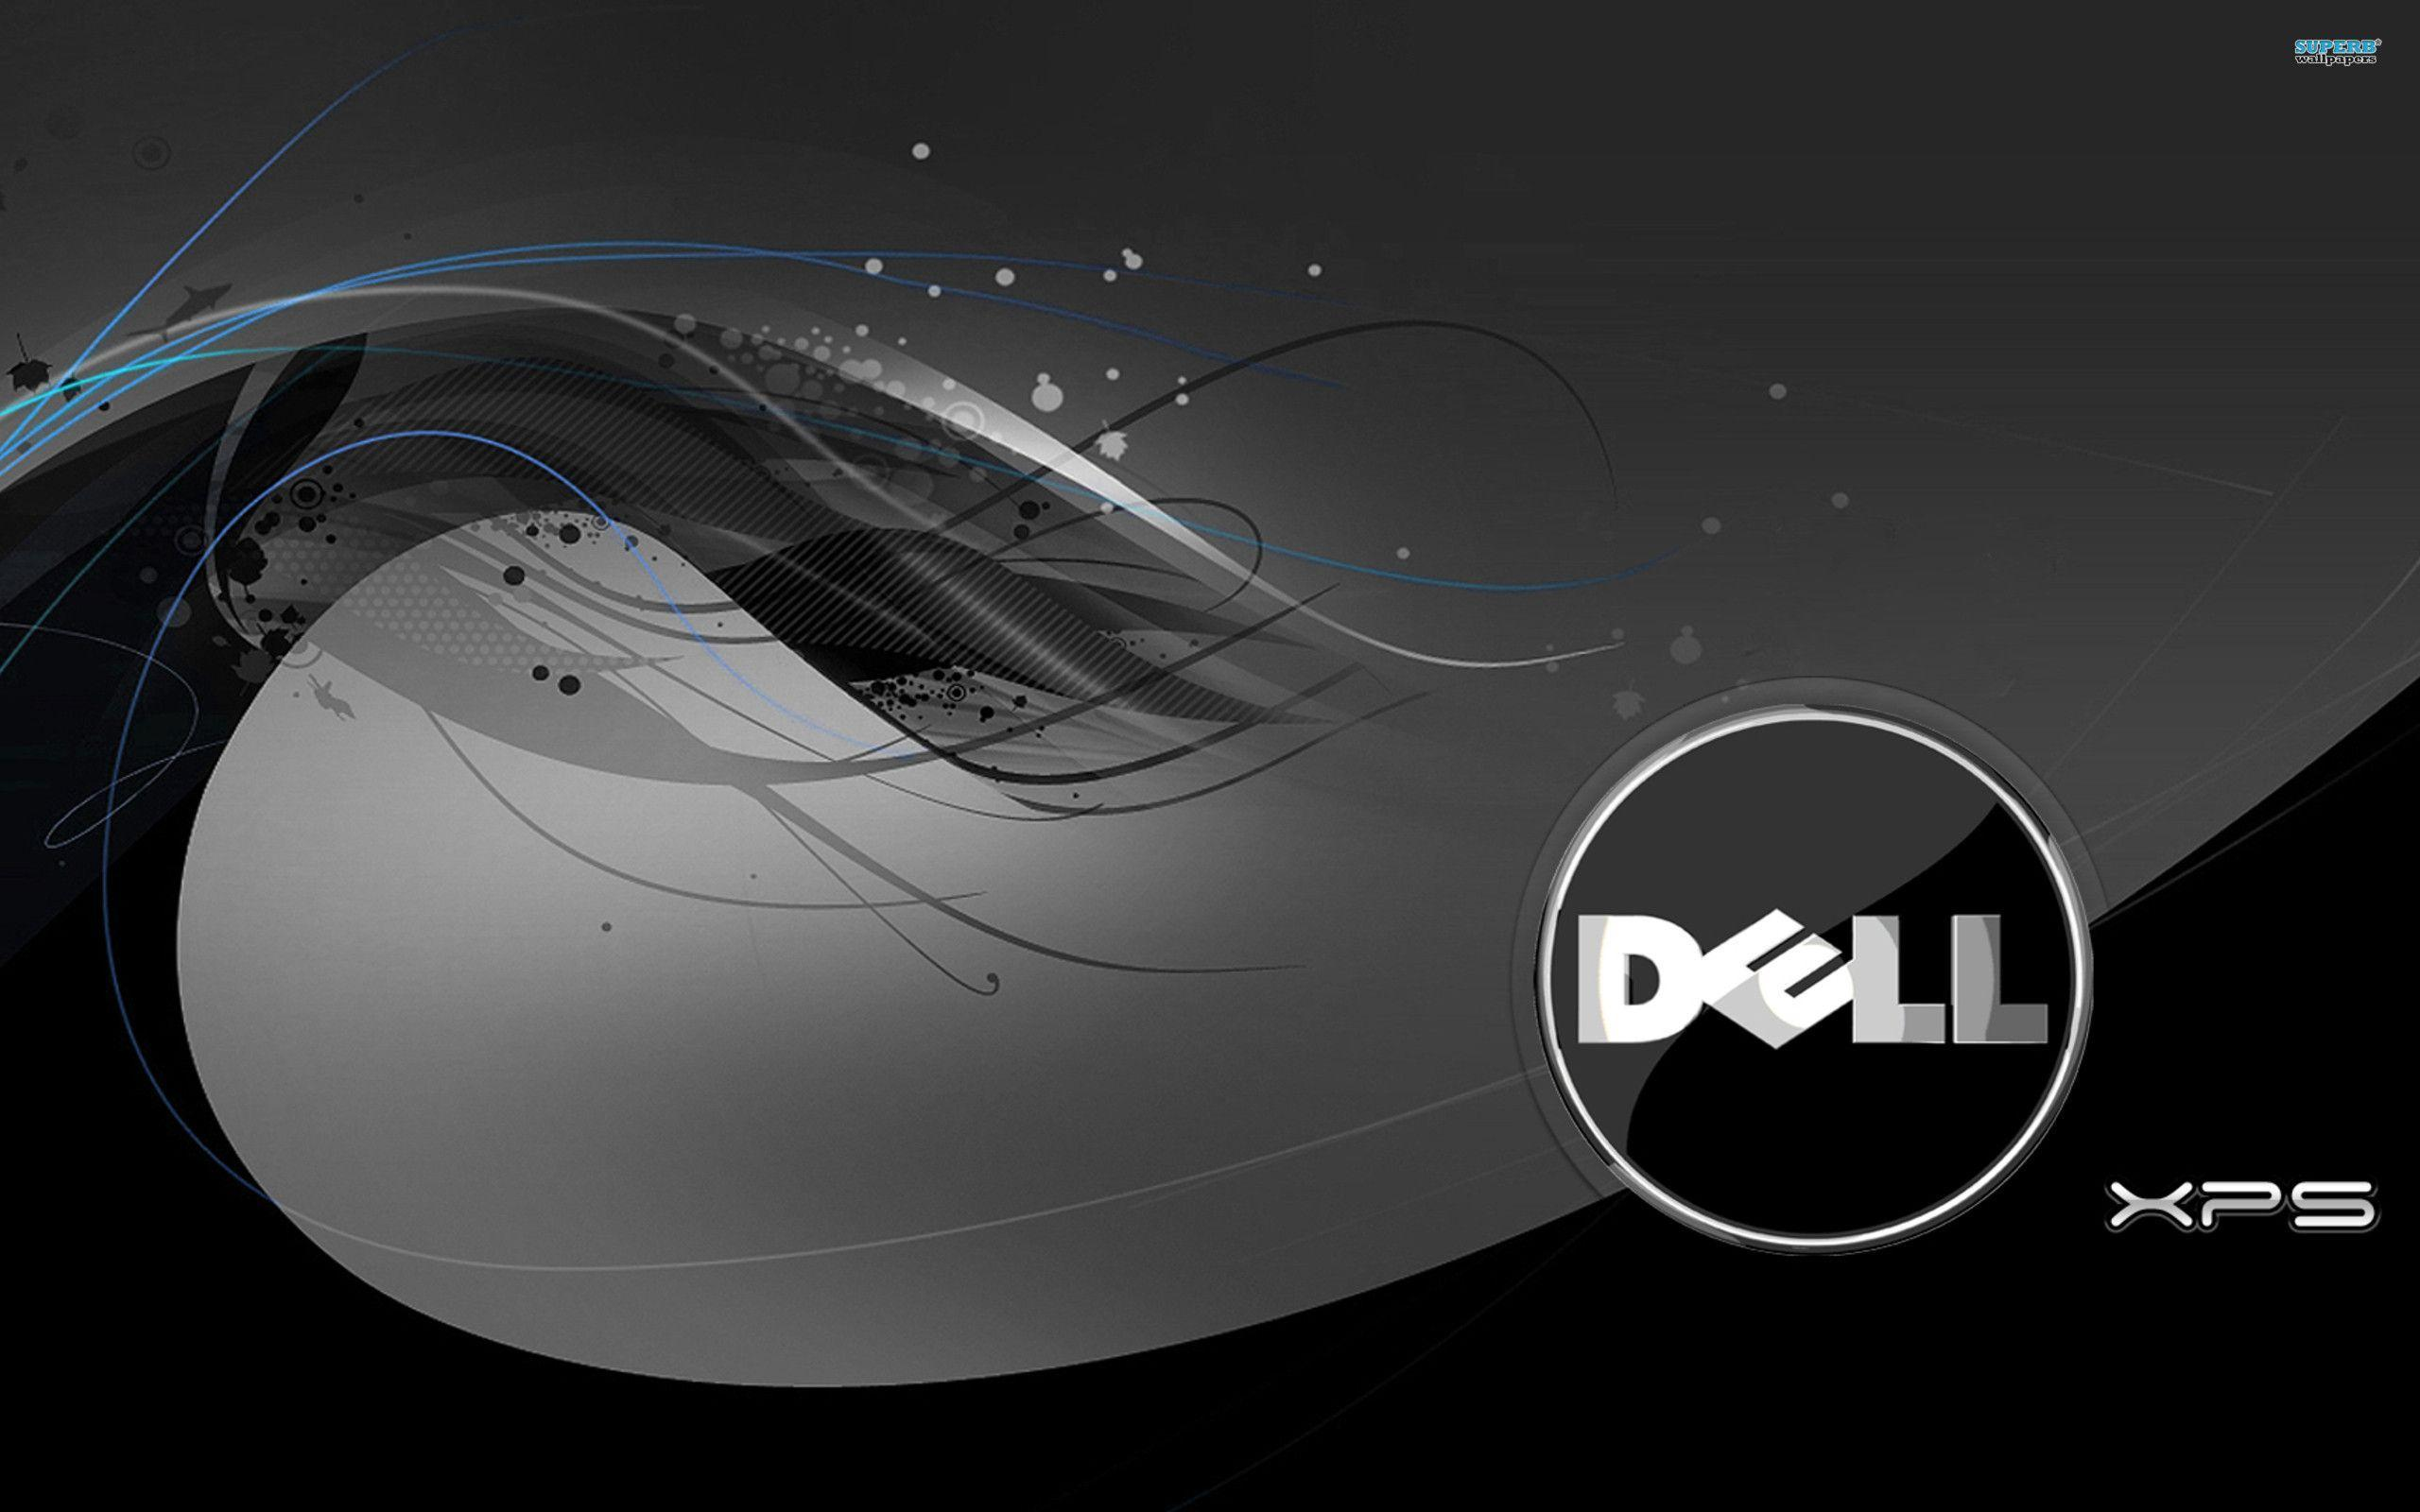 Dell Desktop Backgrounds - Wallpaper Cave